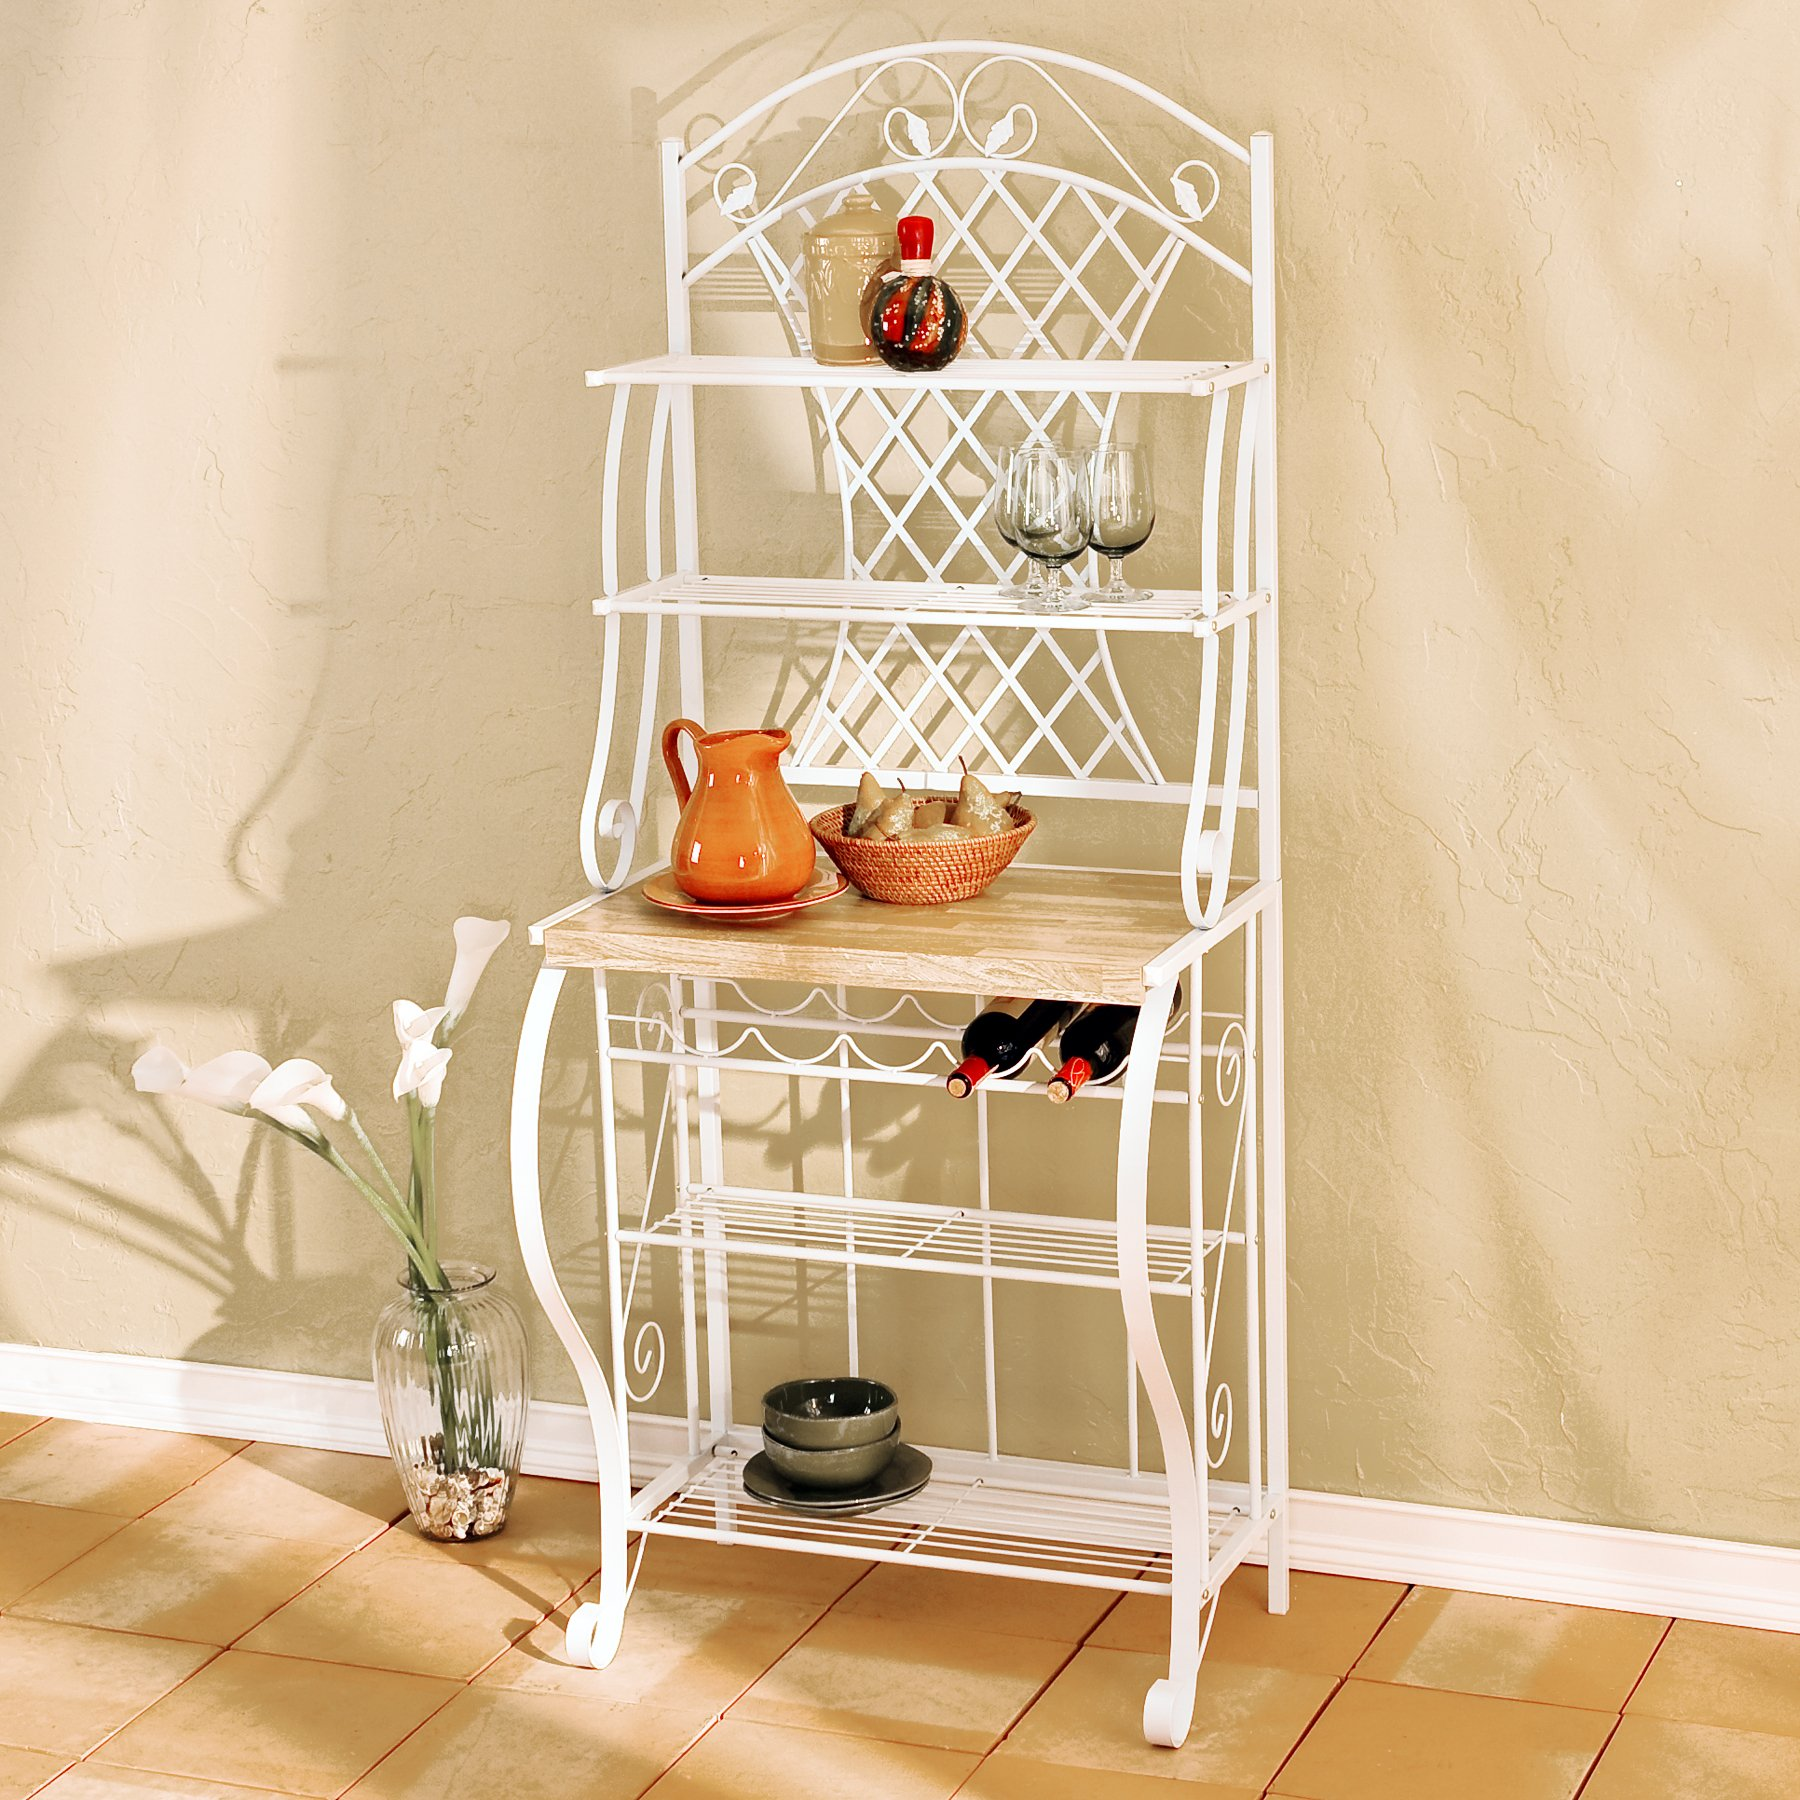 Southern Enterprises Trellis Bakers Rack with Scroll Work, White with Oak Finish by SEI (Image #3)